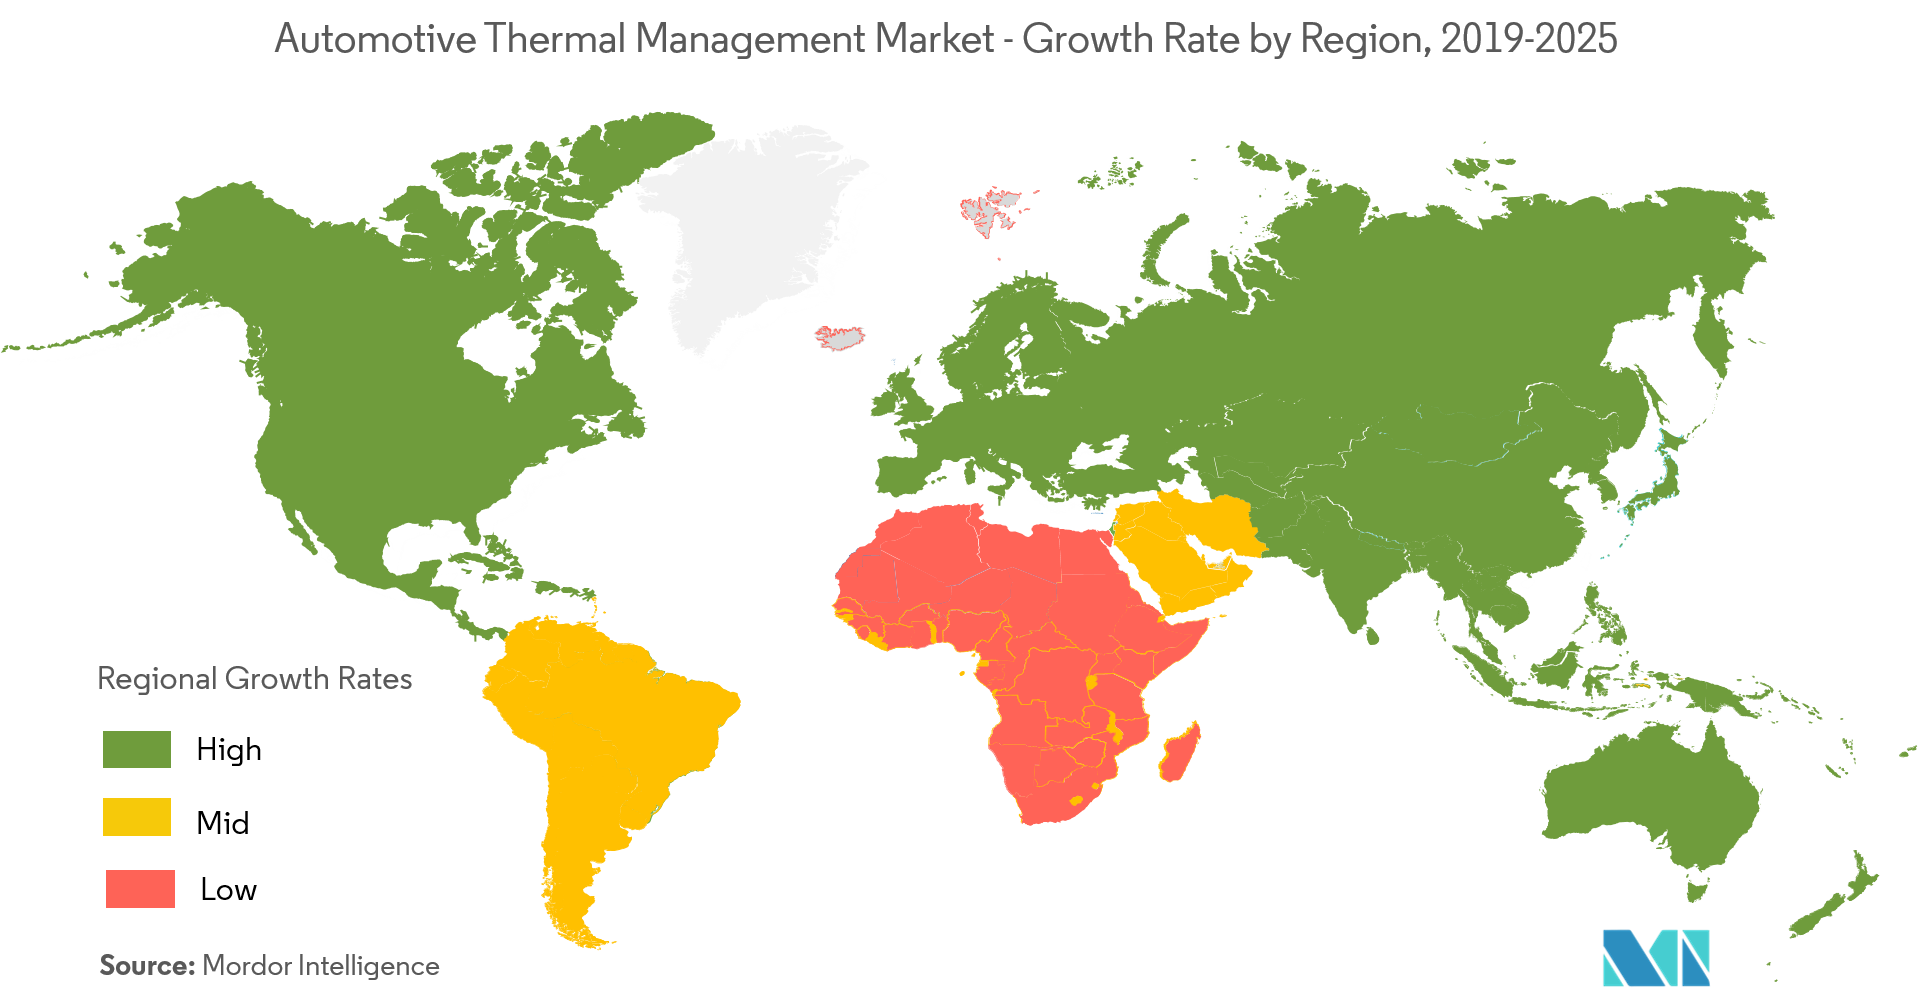 Automotive Thermal Management Market Growth Rate